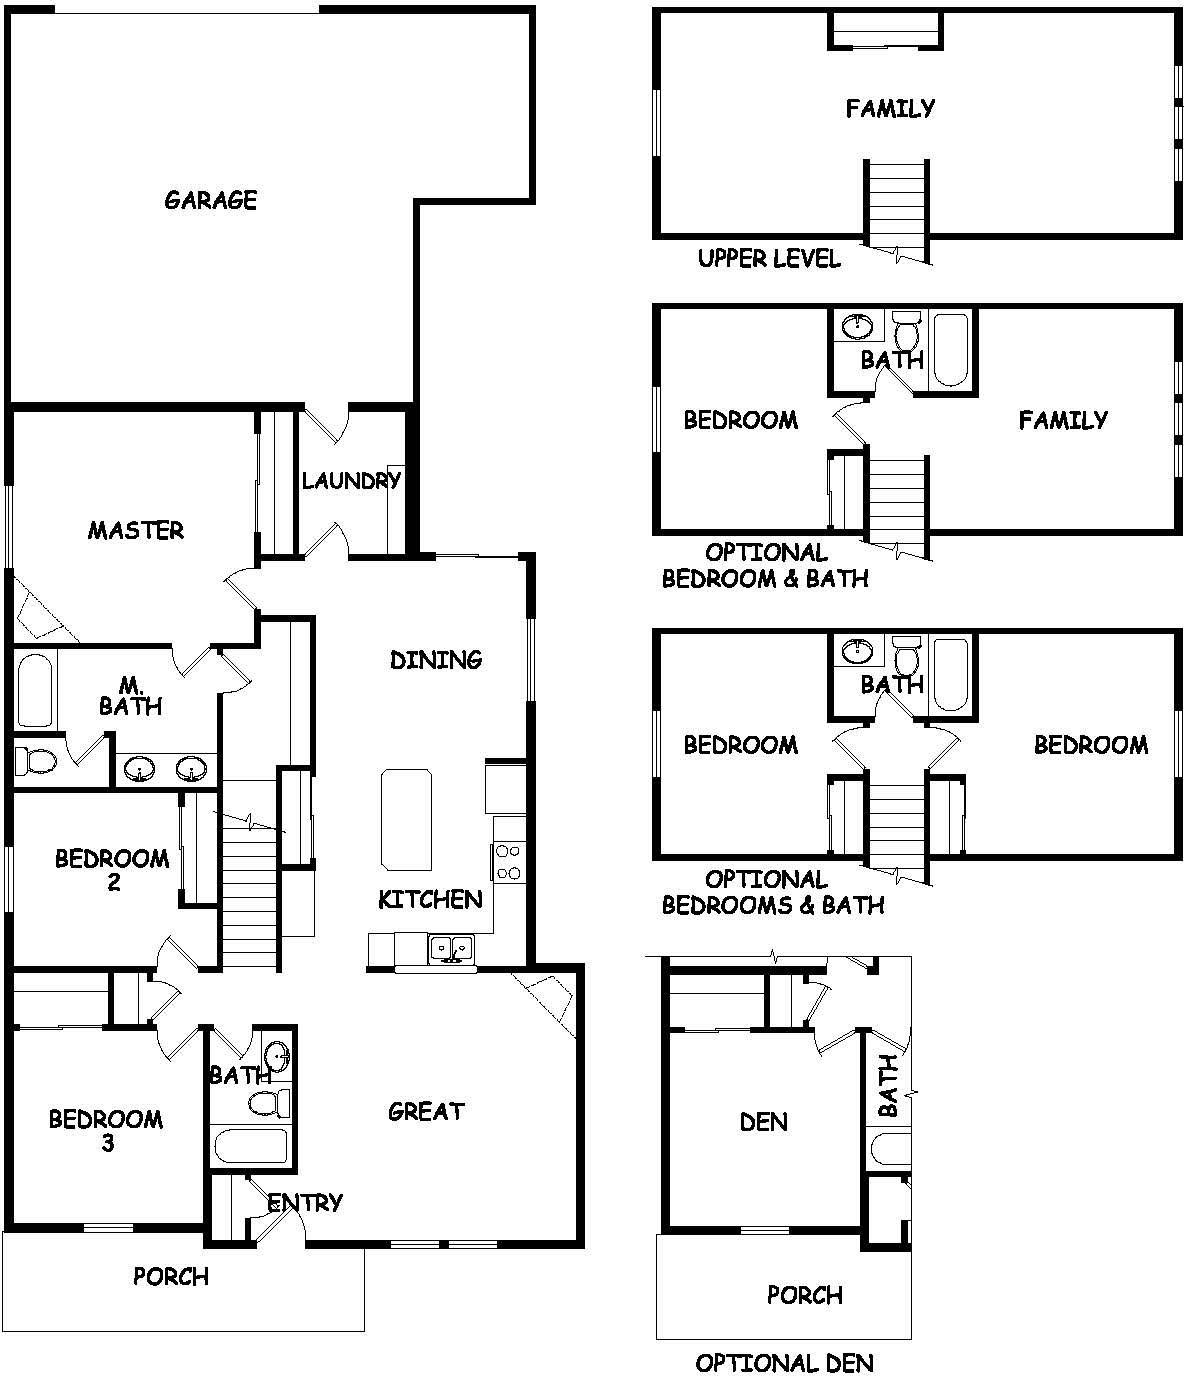 The Targhee 2042 Square Foot New Home Plan